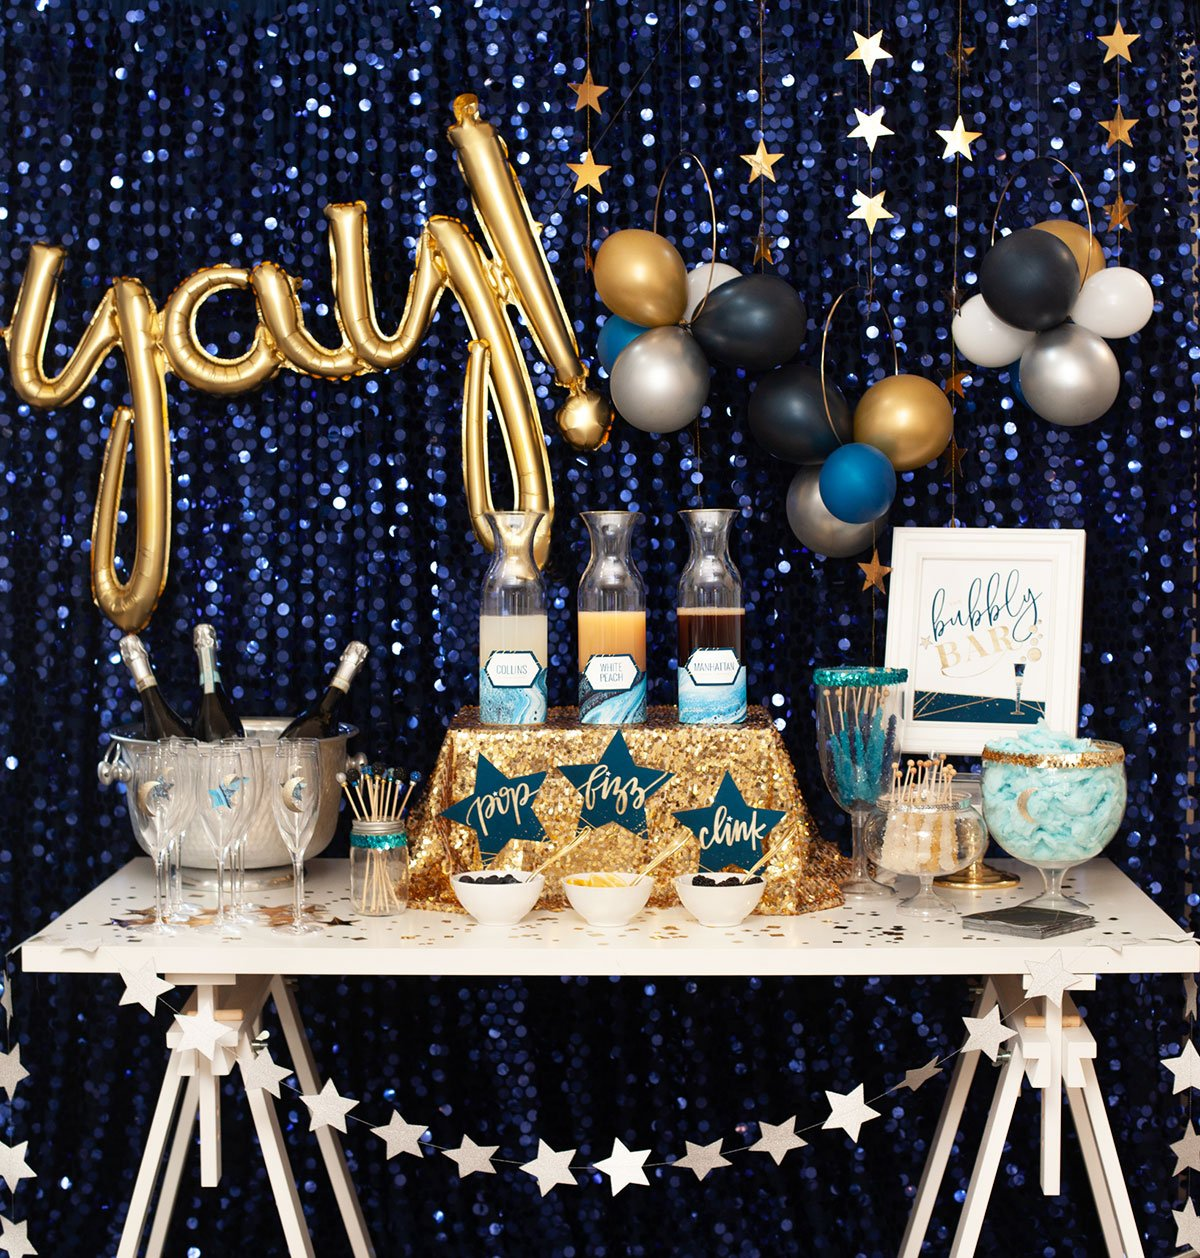 DIY Champagne Bar for New Year's Eve